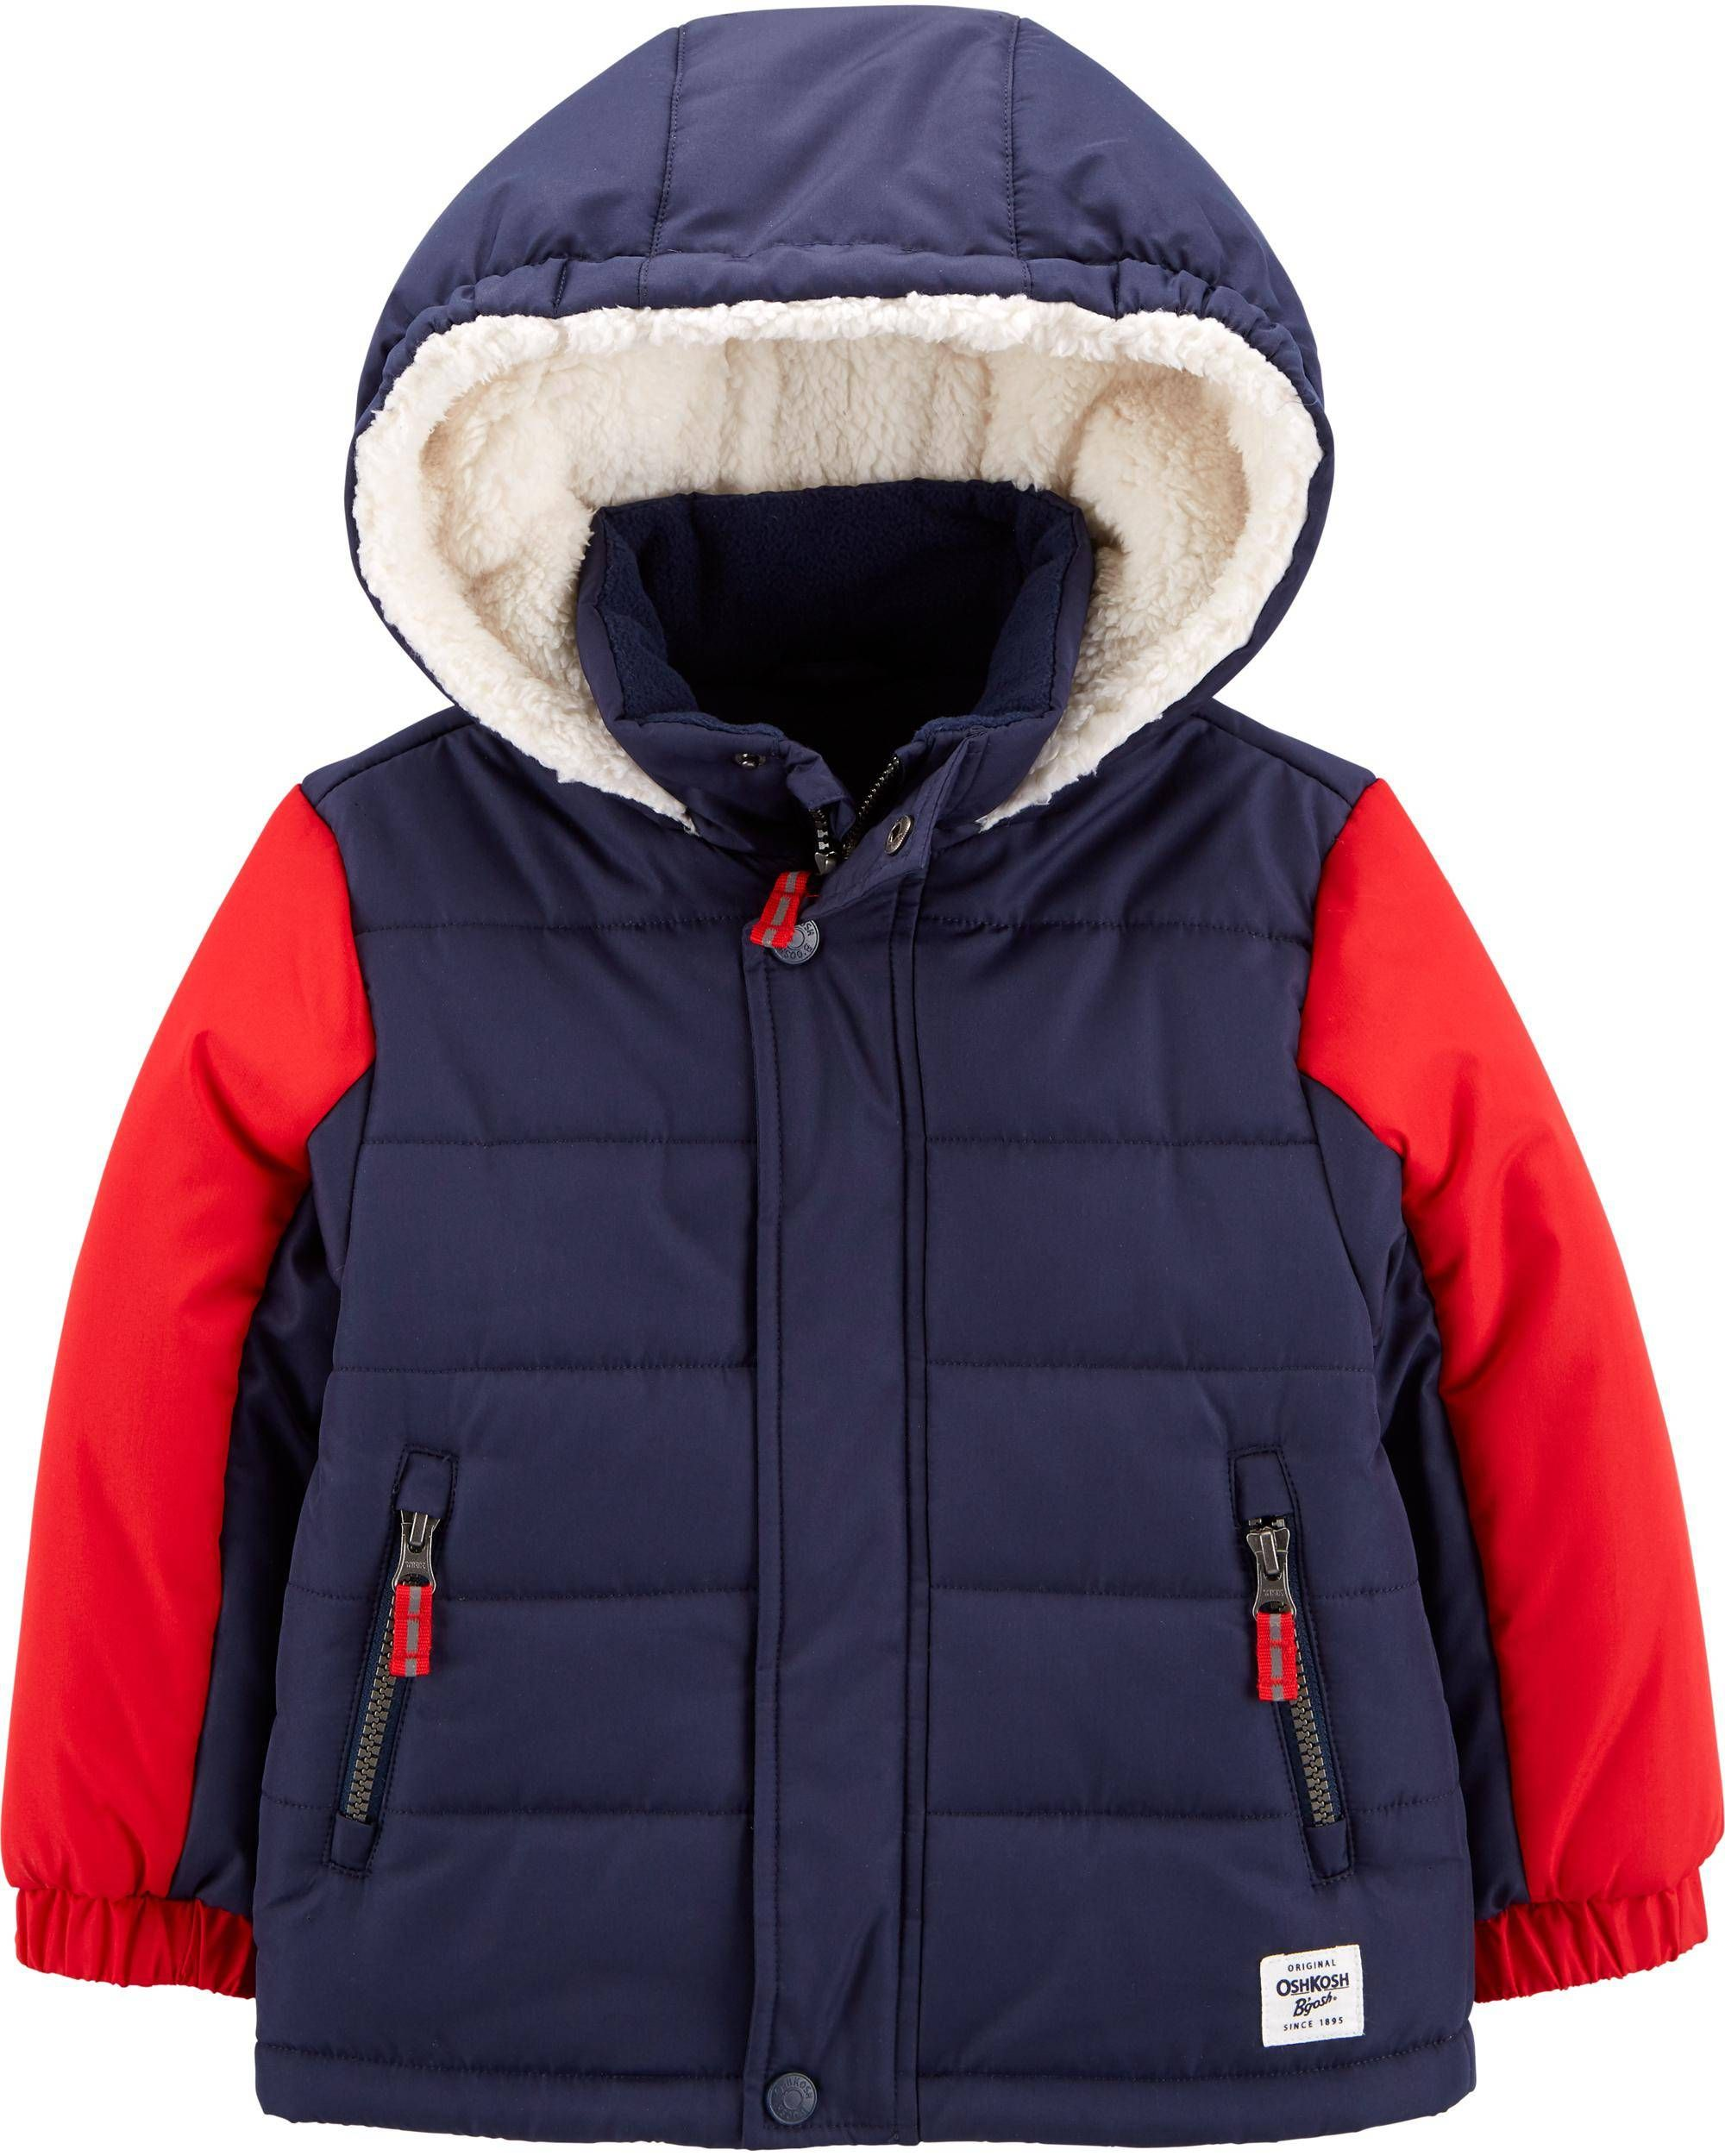 Colorblock Puffer Jacket Boy Outerwear Jackets Shopping Outfit [ 2500 x 2000 Pixel ]